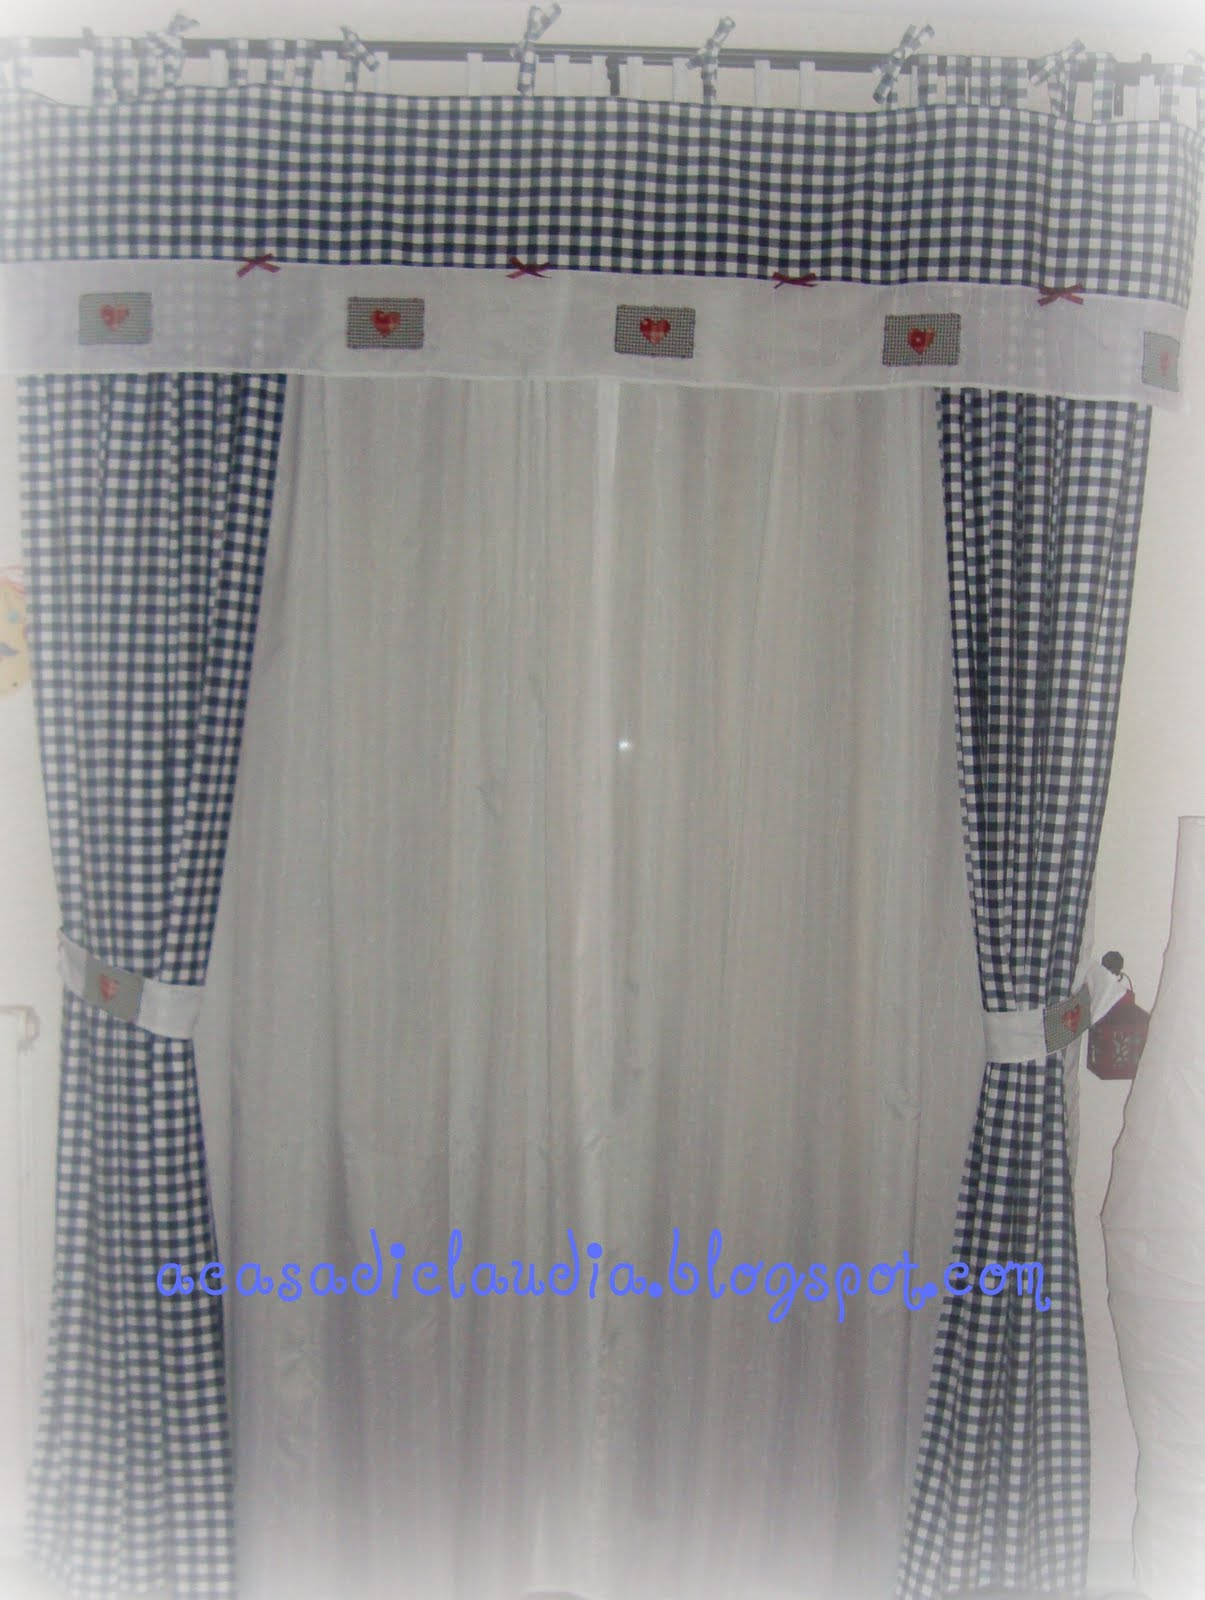 Applique bagno countrybagno country bianco : interior design per ...